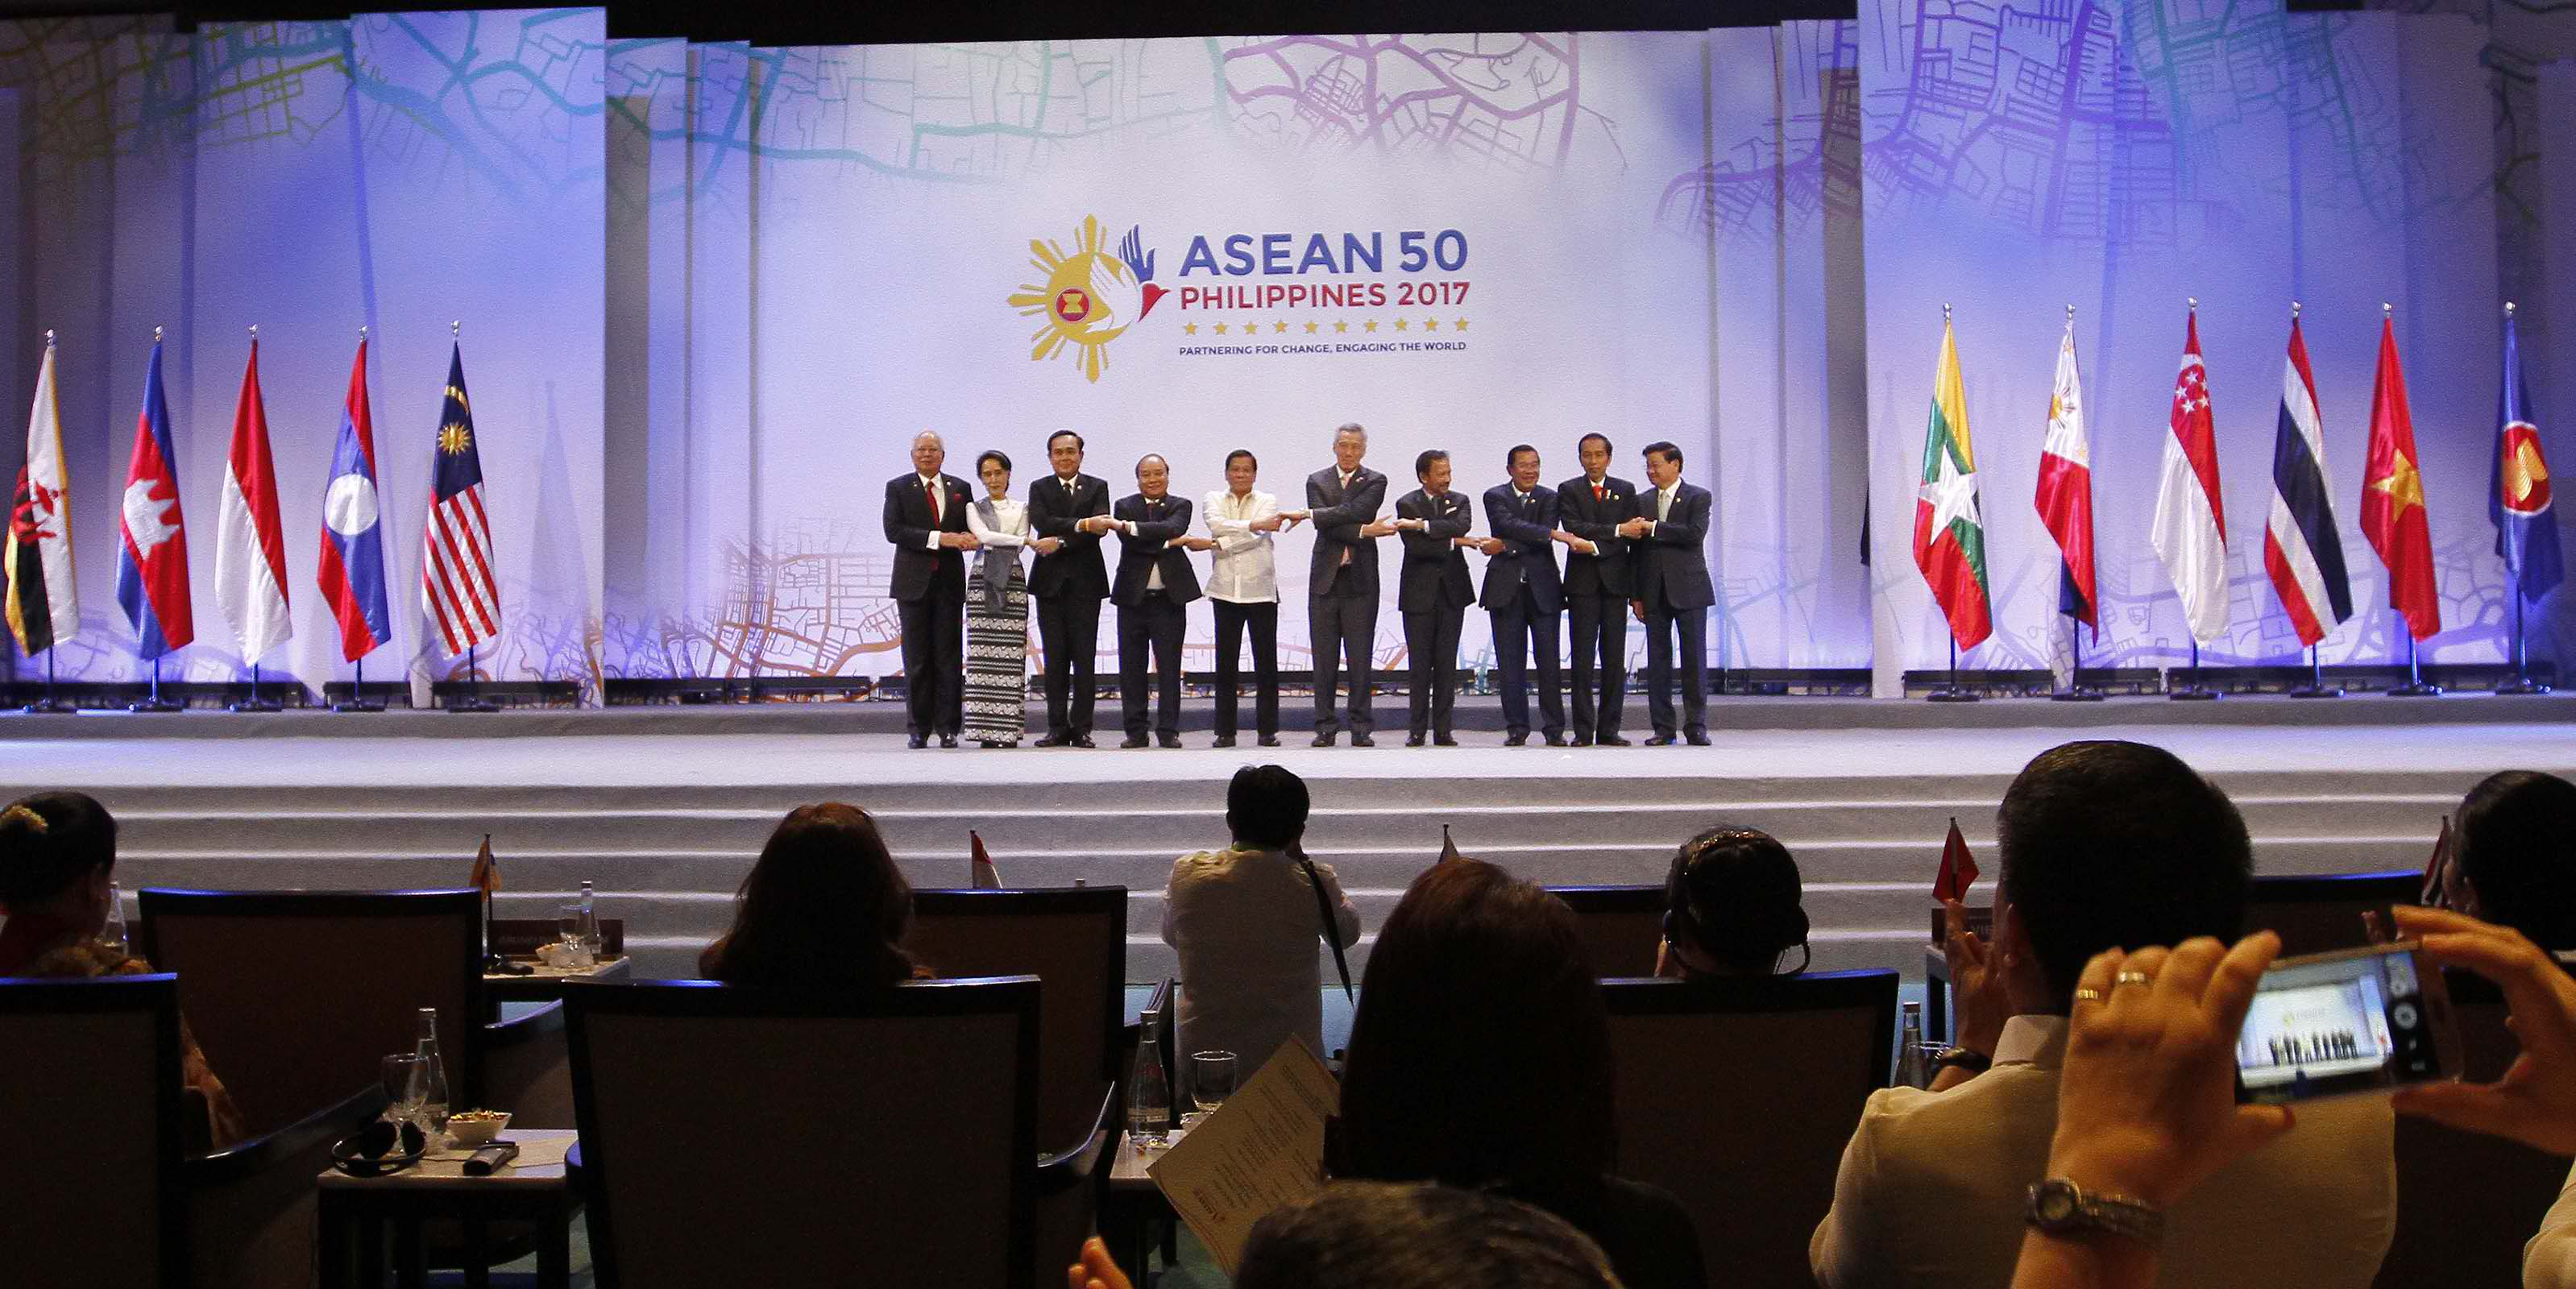 ASEAN Leaders welcomed the latest development on banking integration in the region, citing that this will further ease trade facilitation within the 10-nation bloc. (Photo: Avito C. Dalan/ Philippine News Agency)